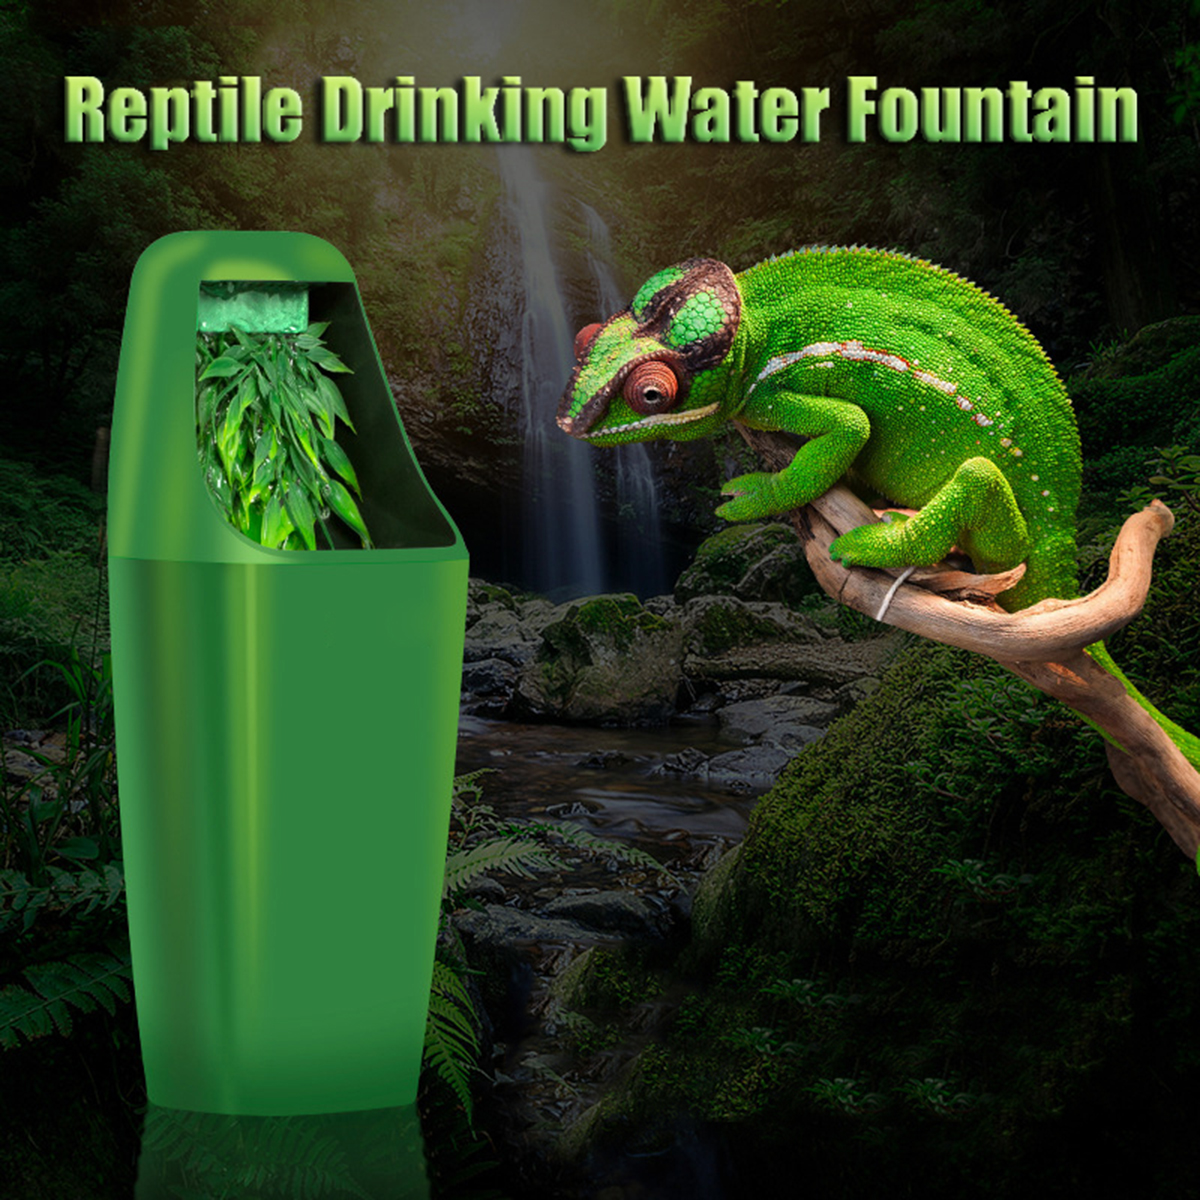 11x27cm Abs Automatic Reptile Water Drinking Filter Feeding Drinkers Tools Drinking Water Fountain Lizard Chameleon Amphibian